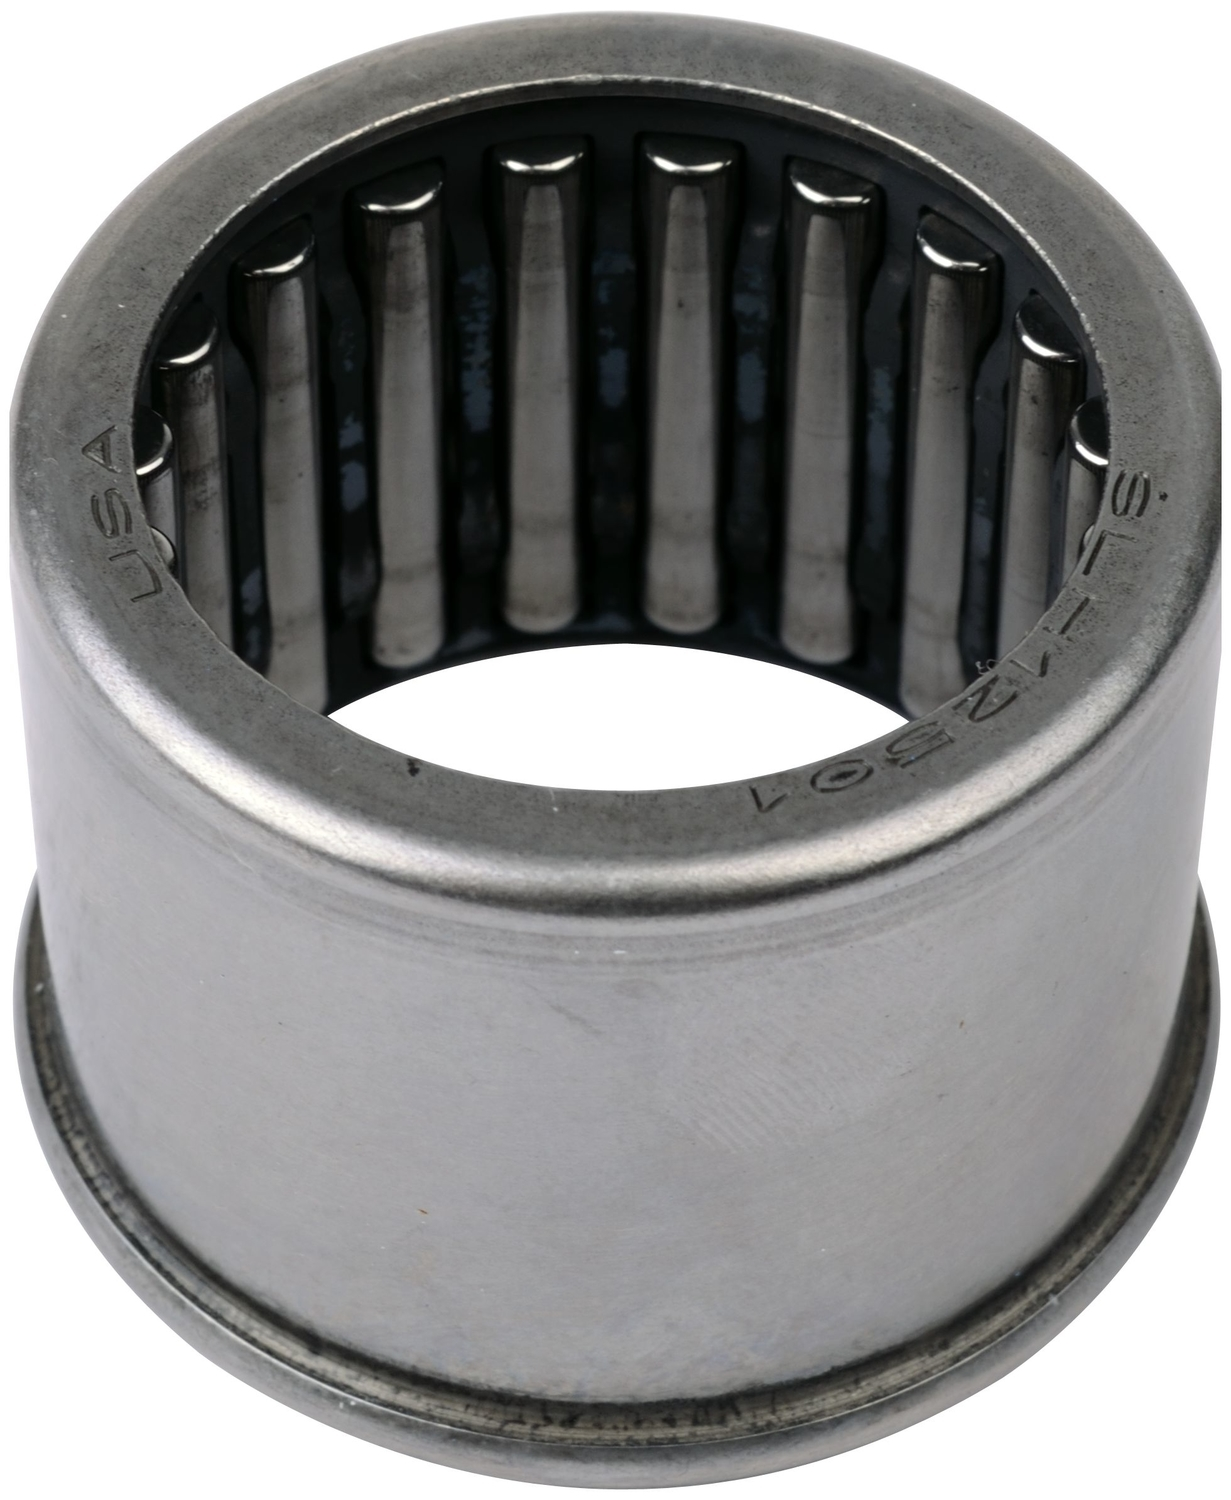 SKF (CHICAGO RAWHIDE) - Steering Gear Pitman Shaft Bearing - SKF BH1250